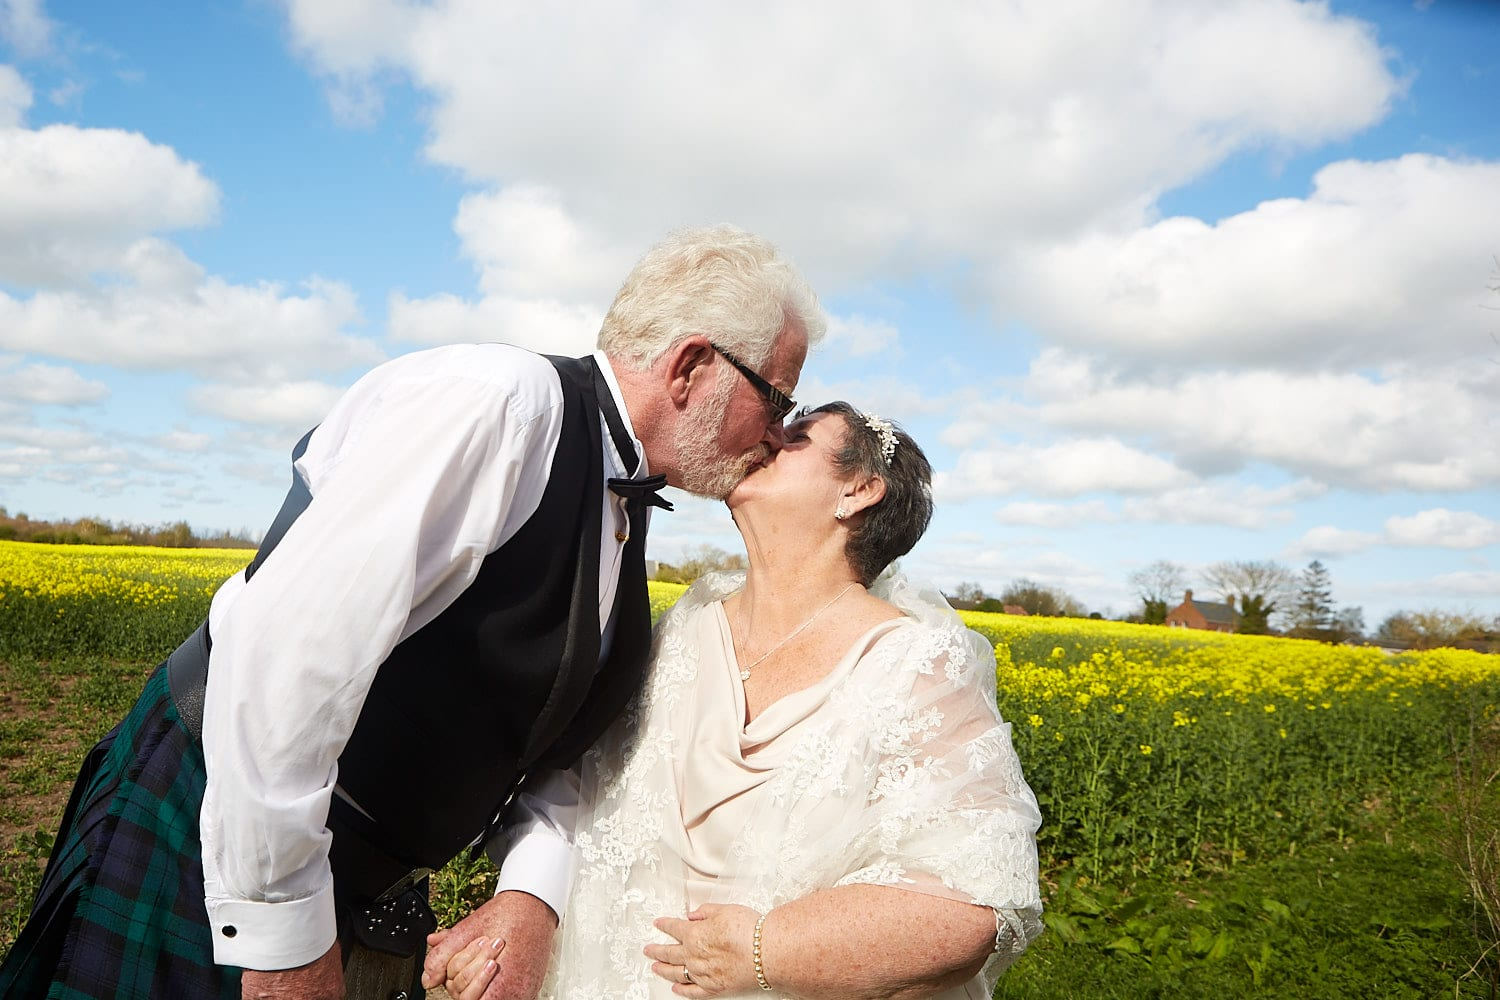 An older, just married couple kiss.